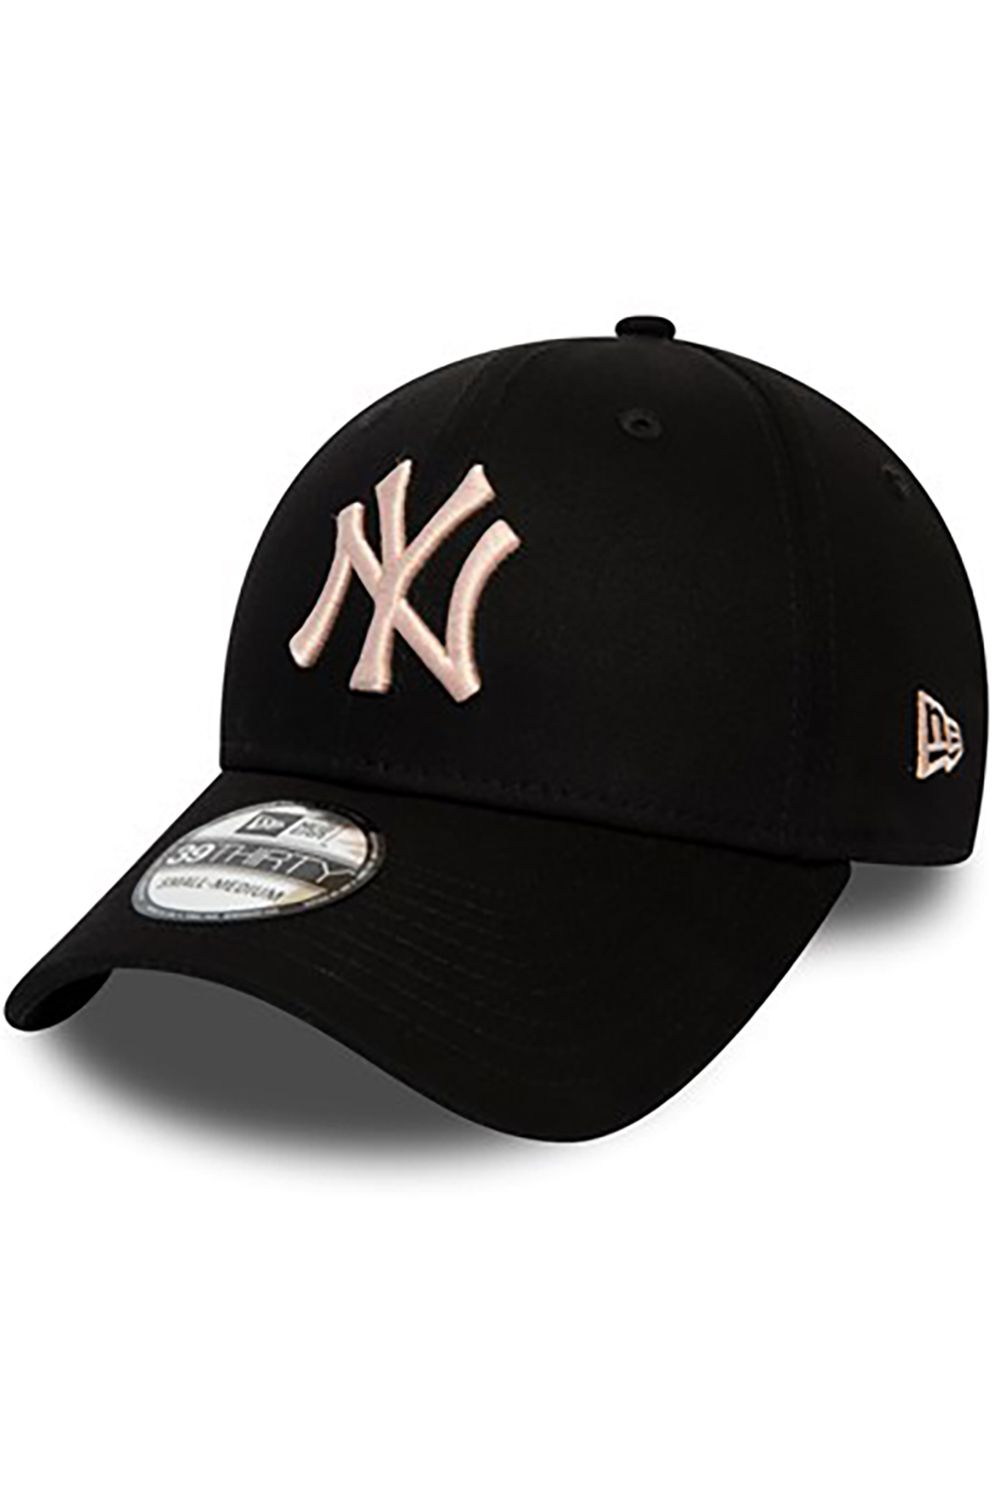 Bone New Era LEAGUE ESSENTIAL 39THIRTY Black/Blush Sky